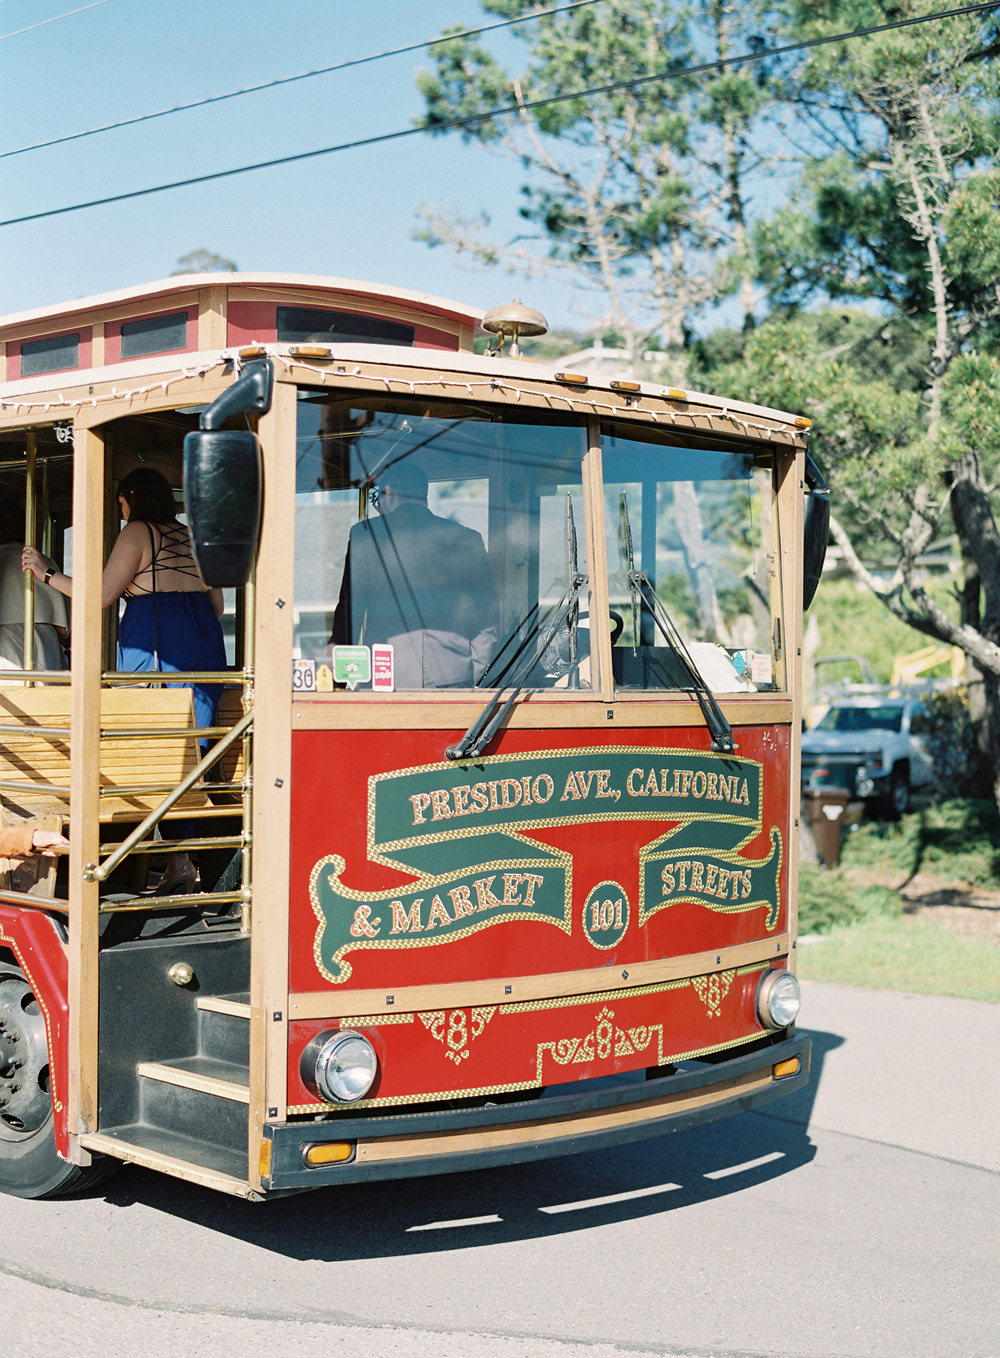 small red trolley for wedding transportation